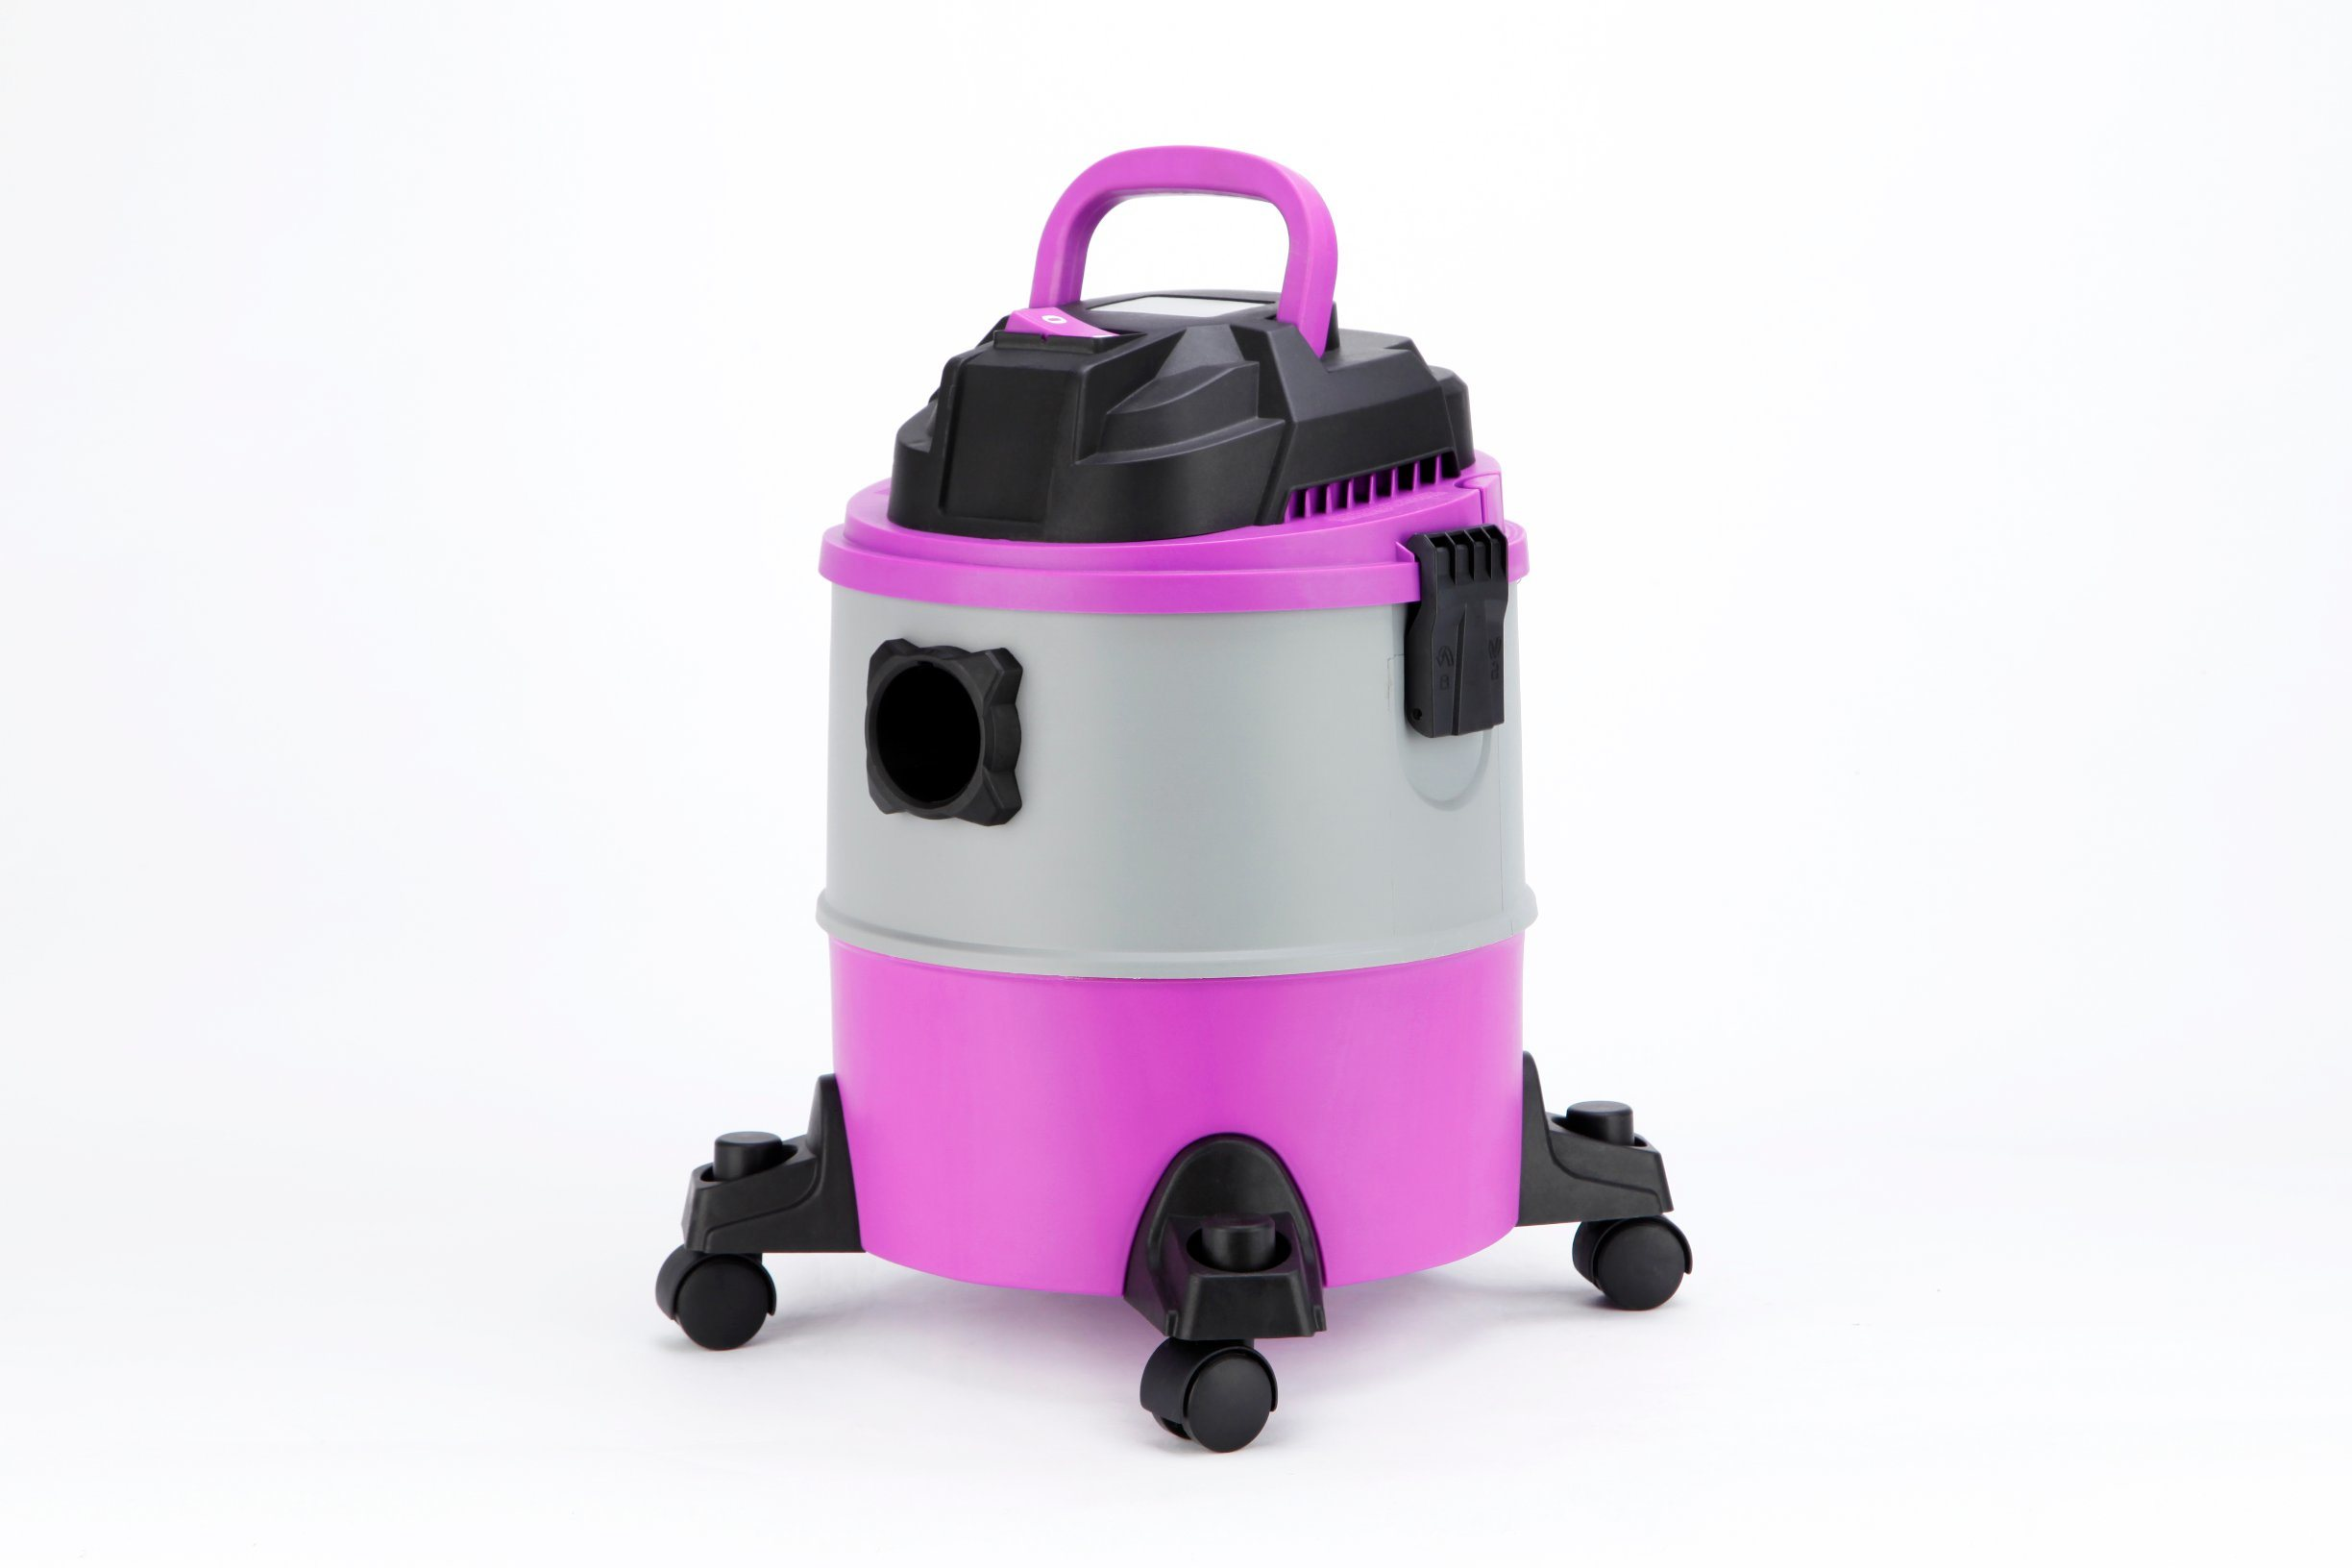 305p-20L 1250-1400W Plastic Tank Wet Dry Water Dust Vacuum Cleaner with or Without Socket